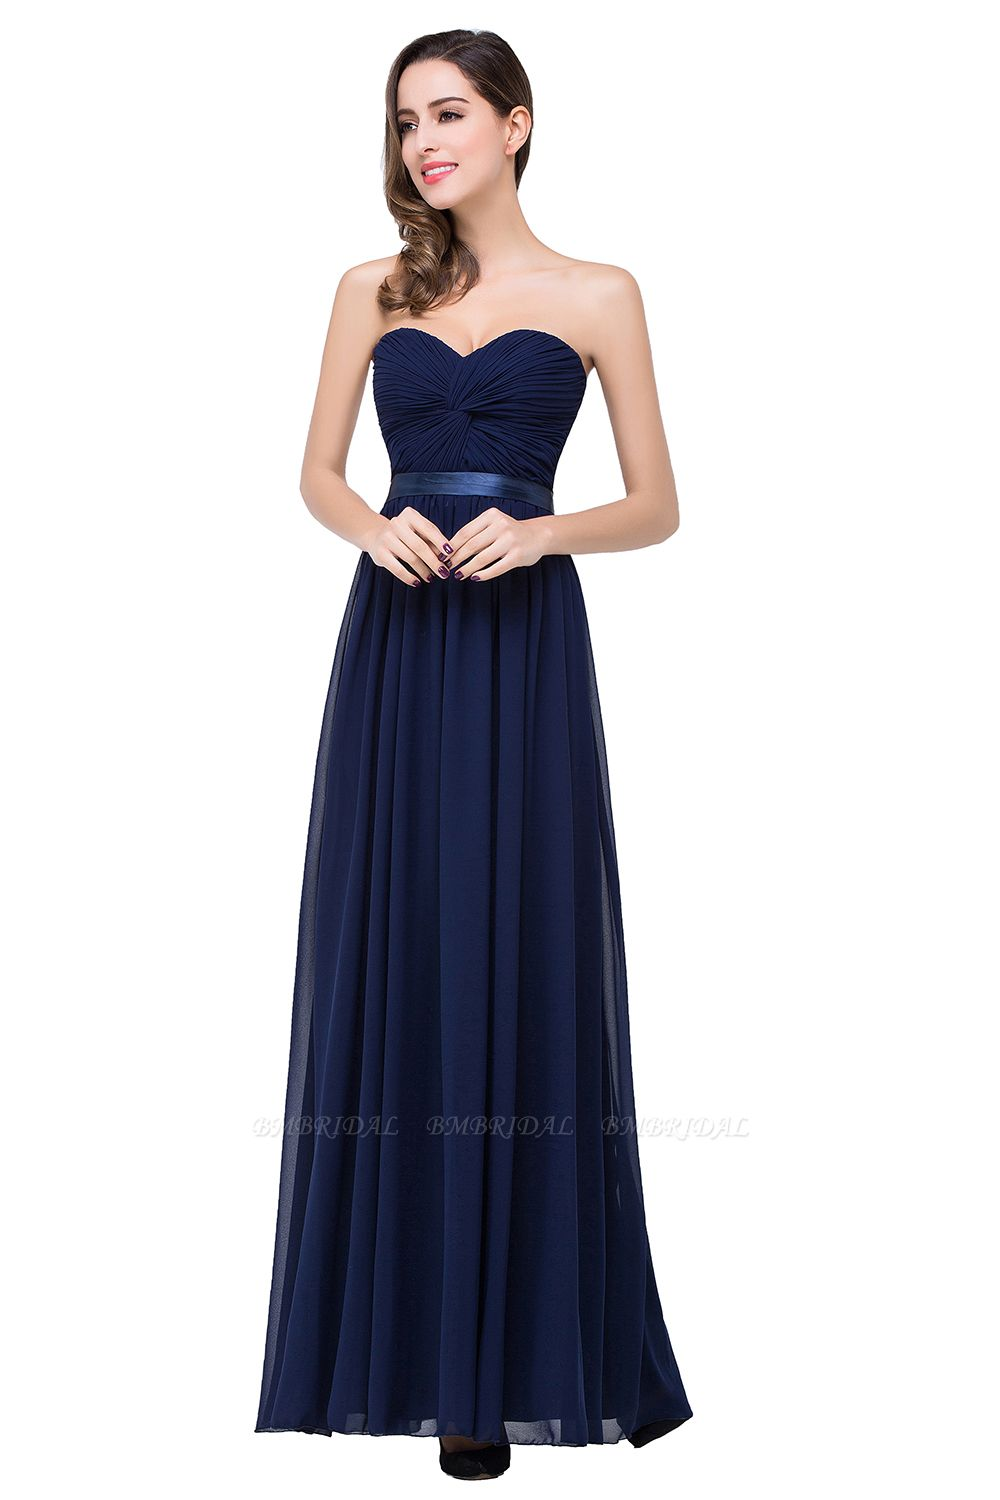 BMbridal Affordable Chiffon Strapless Navy Bridesmaid Dress with Ruffle In Stock